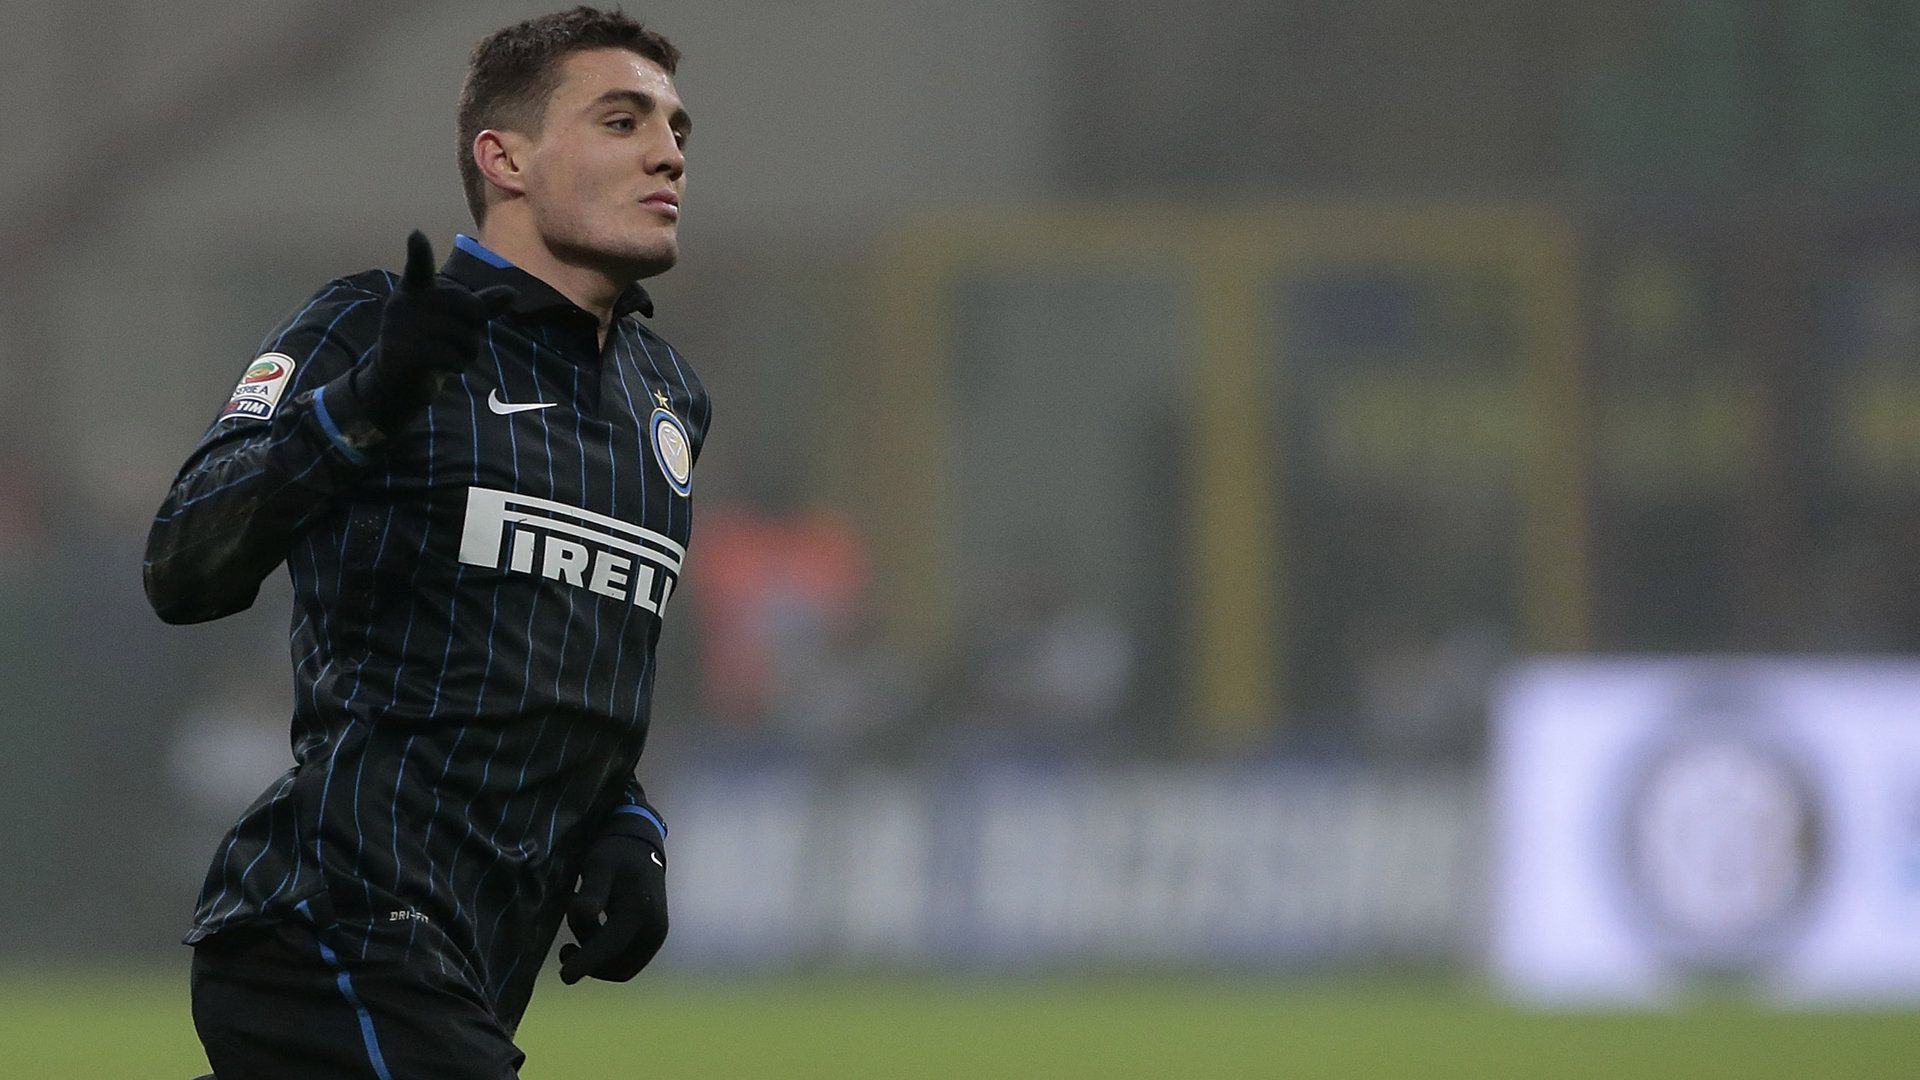 Mateo Kovacic to Real Madrid for 35 million: the two clubs are now ...